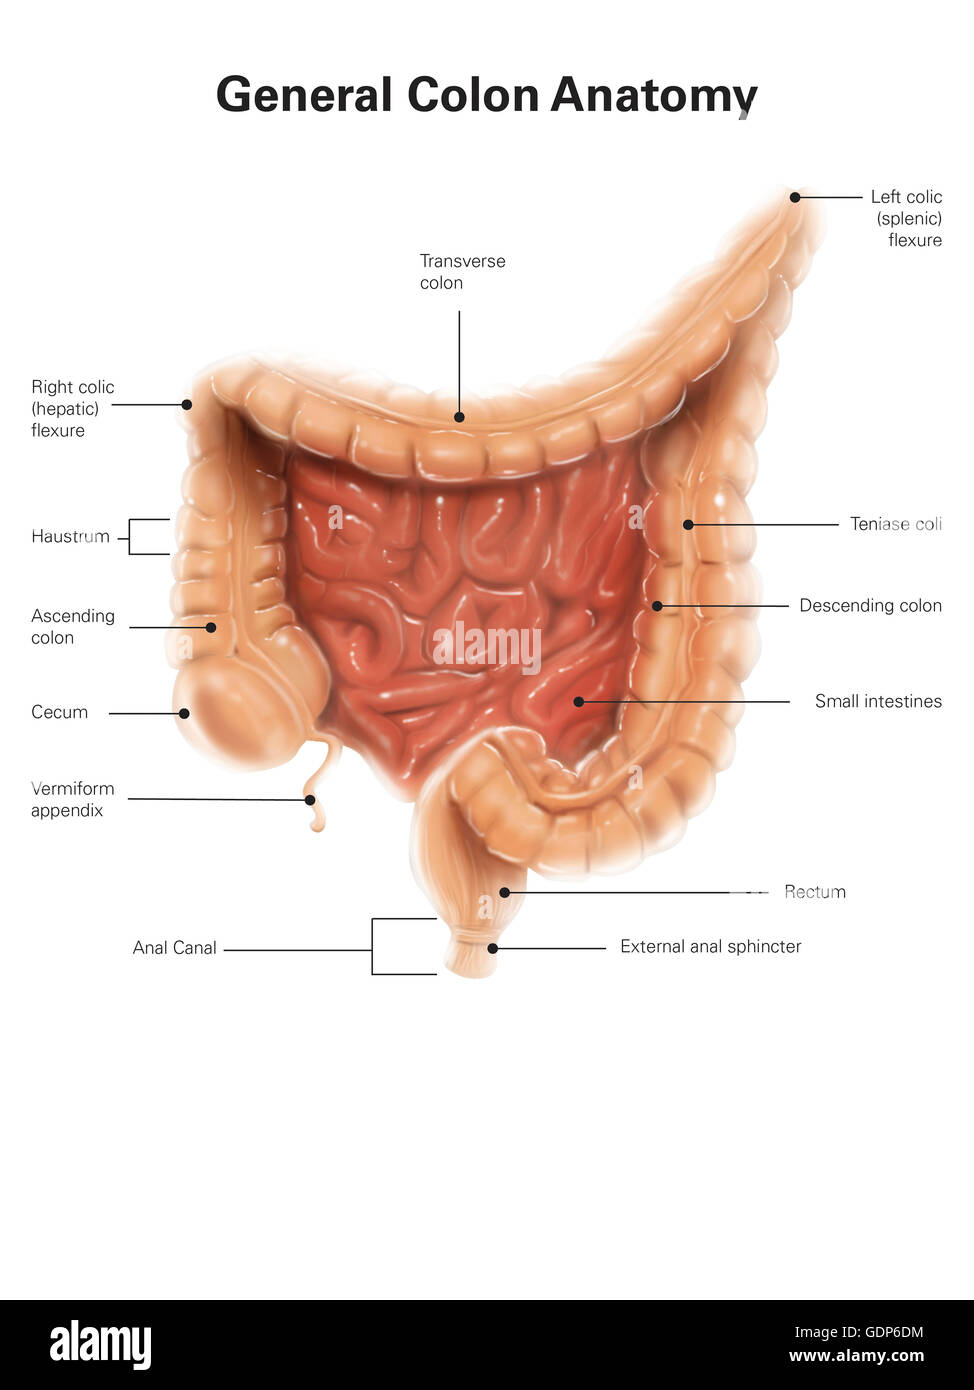 General Colon Anatomy With Labels Stock Photo 111740768 Alamy